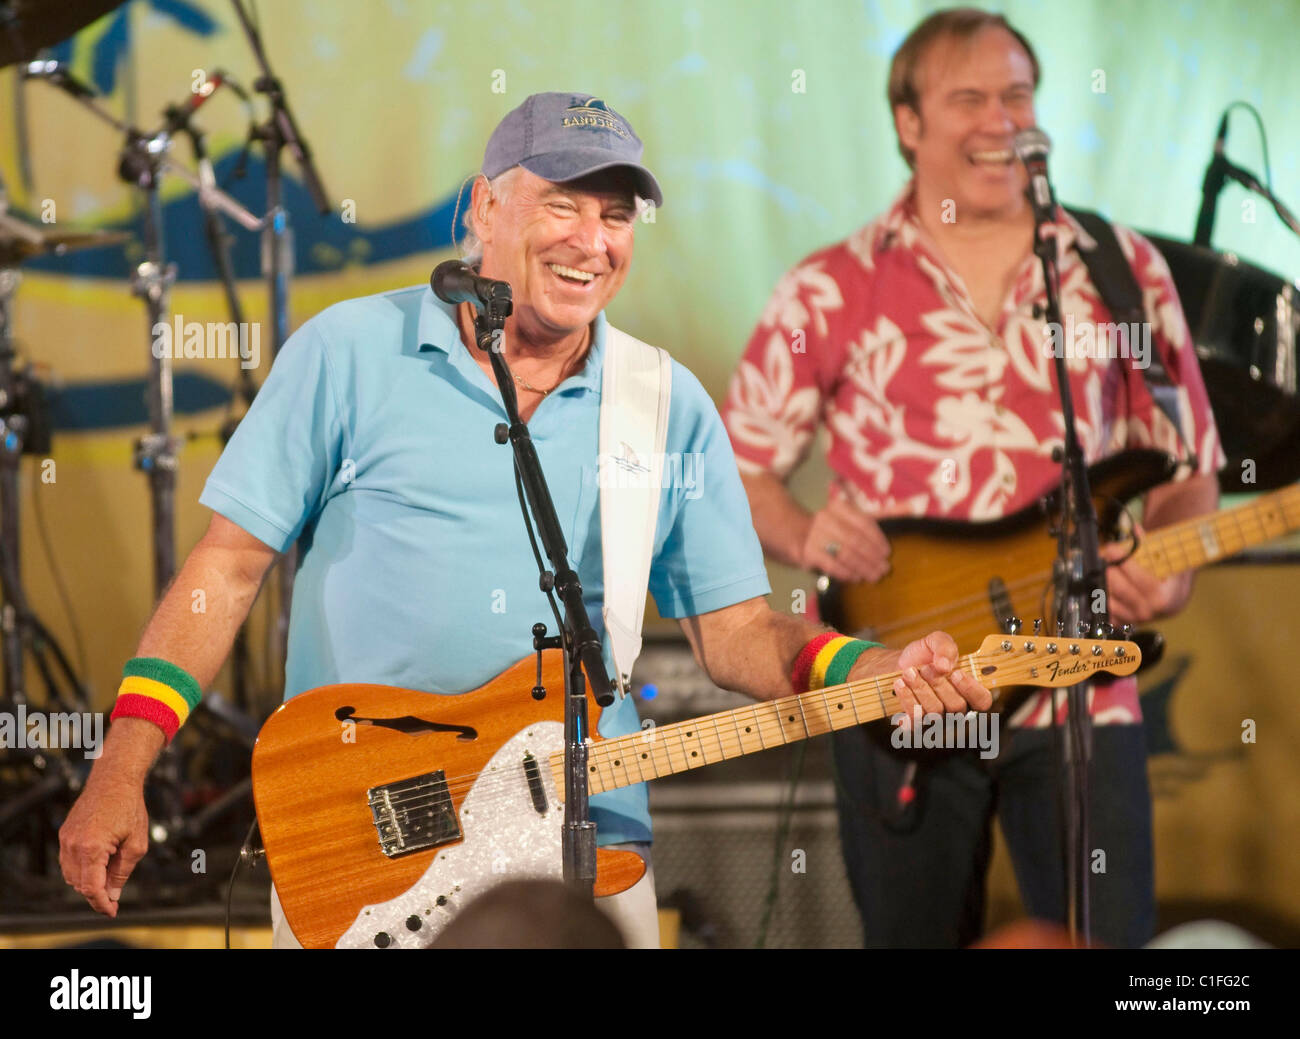 Wondrous Jimmy Buffett And His Coral Reefer Band The Miami Dolphins Download Free Architecture Designs Scobabritishbridgeorg